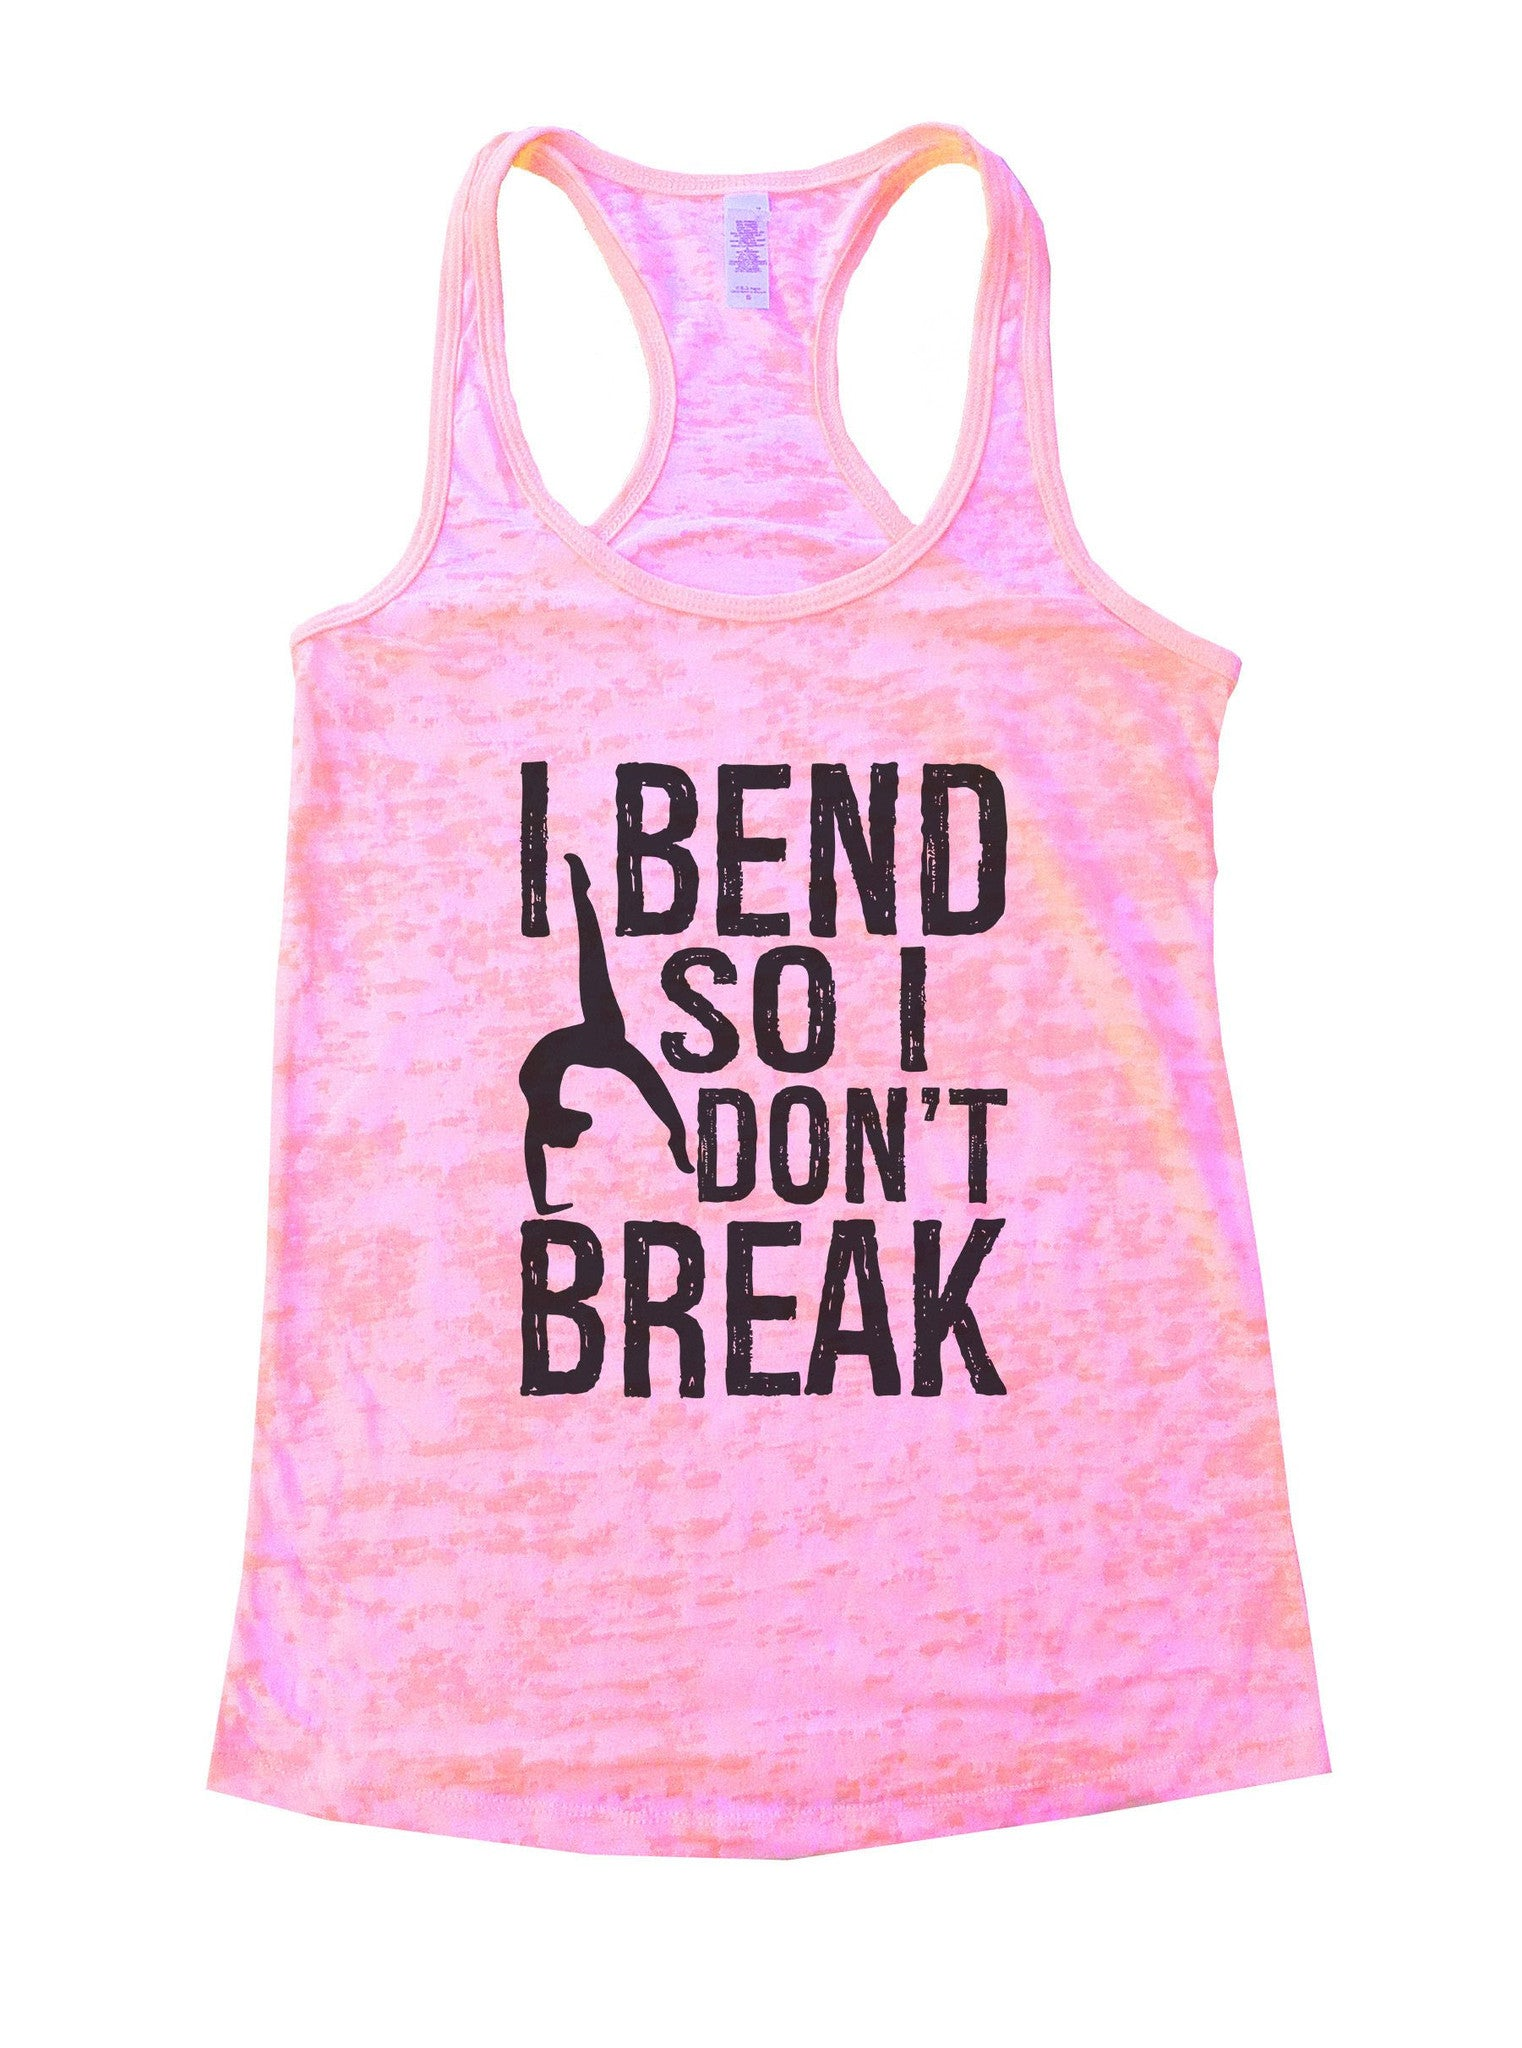 I Bend So I Don't Break Burnout Tank Top By BurnoutTankTops.com - 942 - Funny Shirts Tank Tops Burnouts and Triblends  - 2